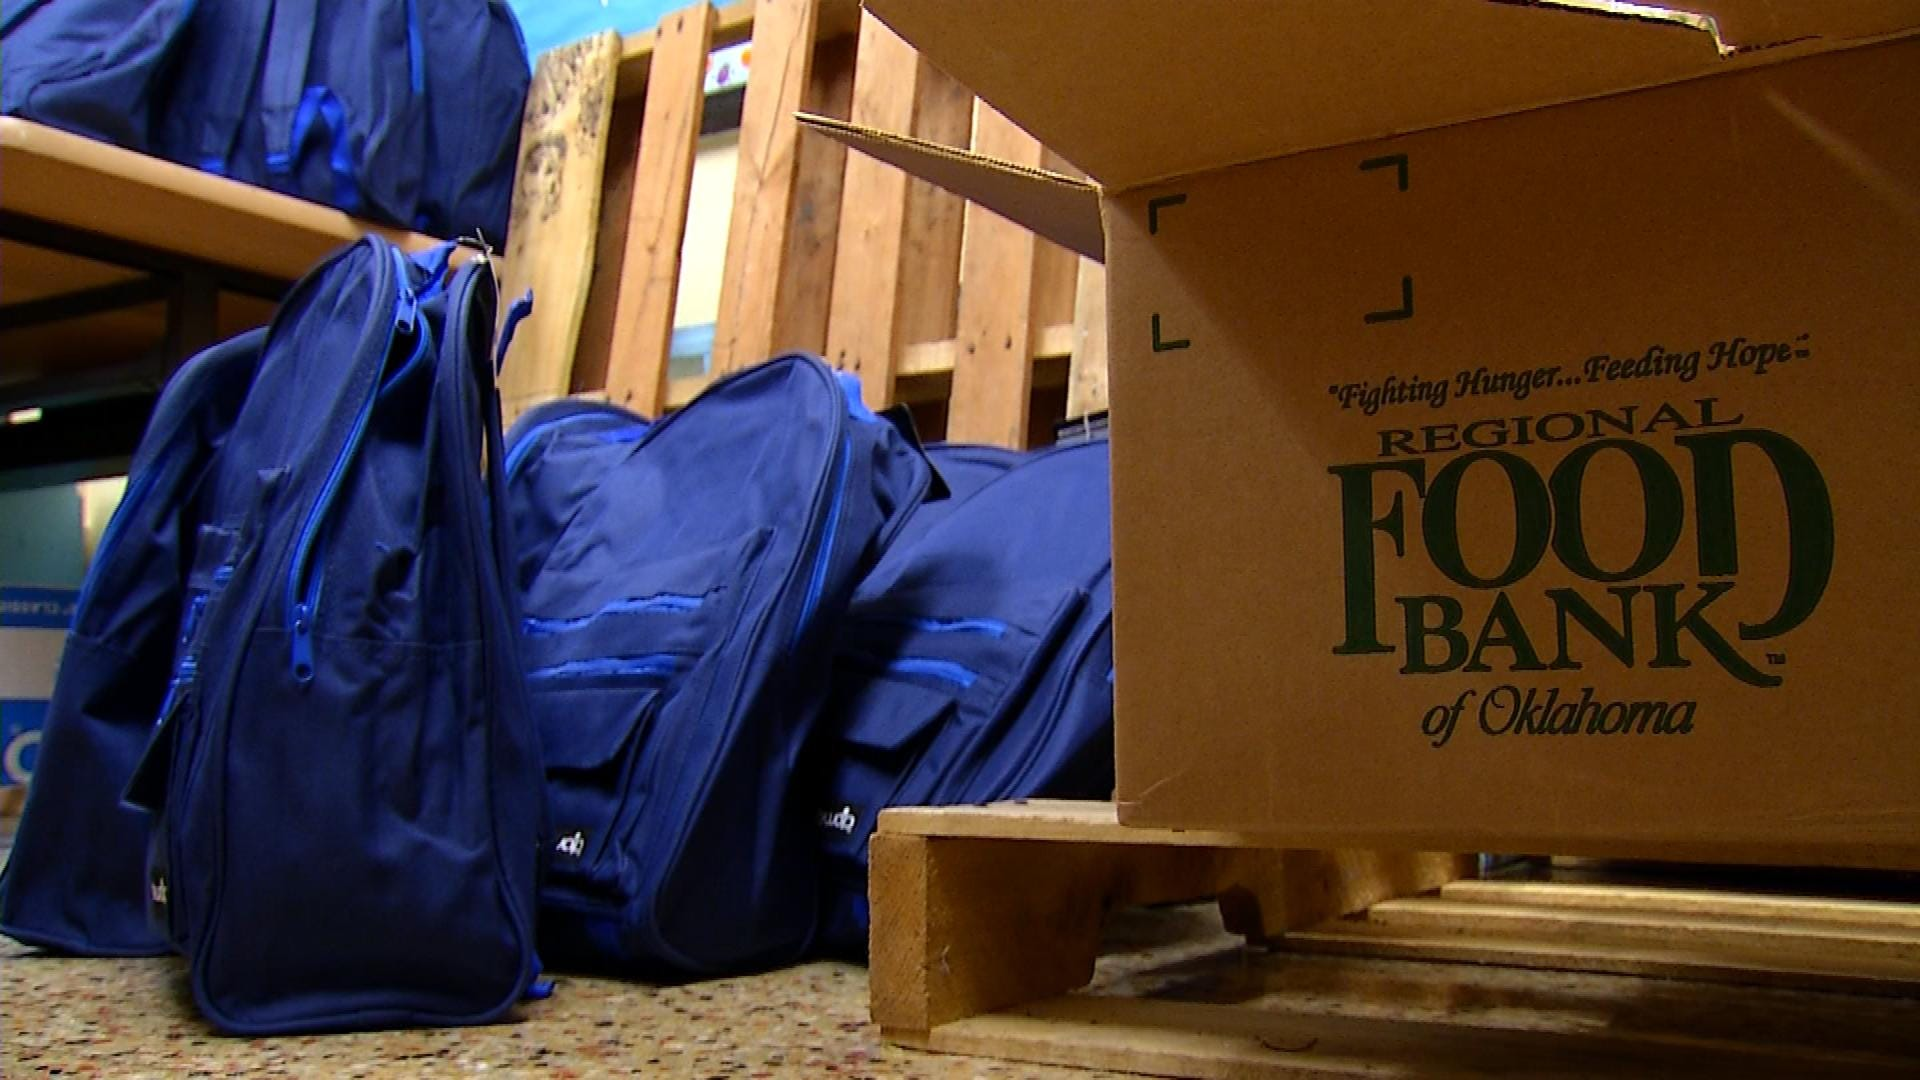 Food Bank Employee Shares Story Of Hunger And Giving Back